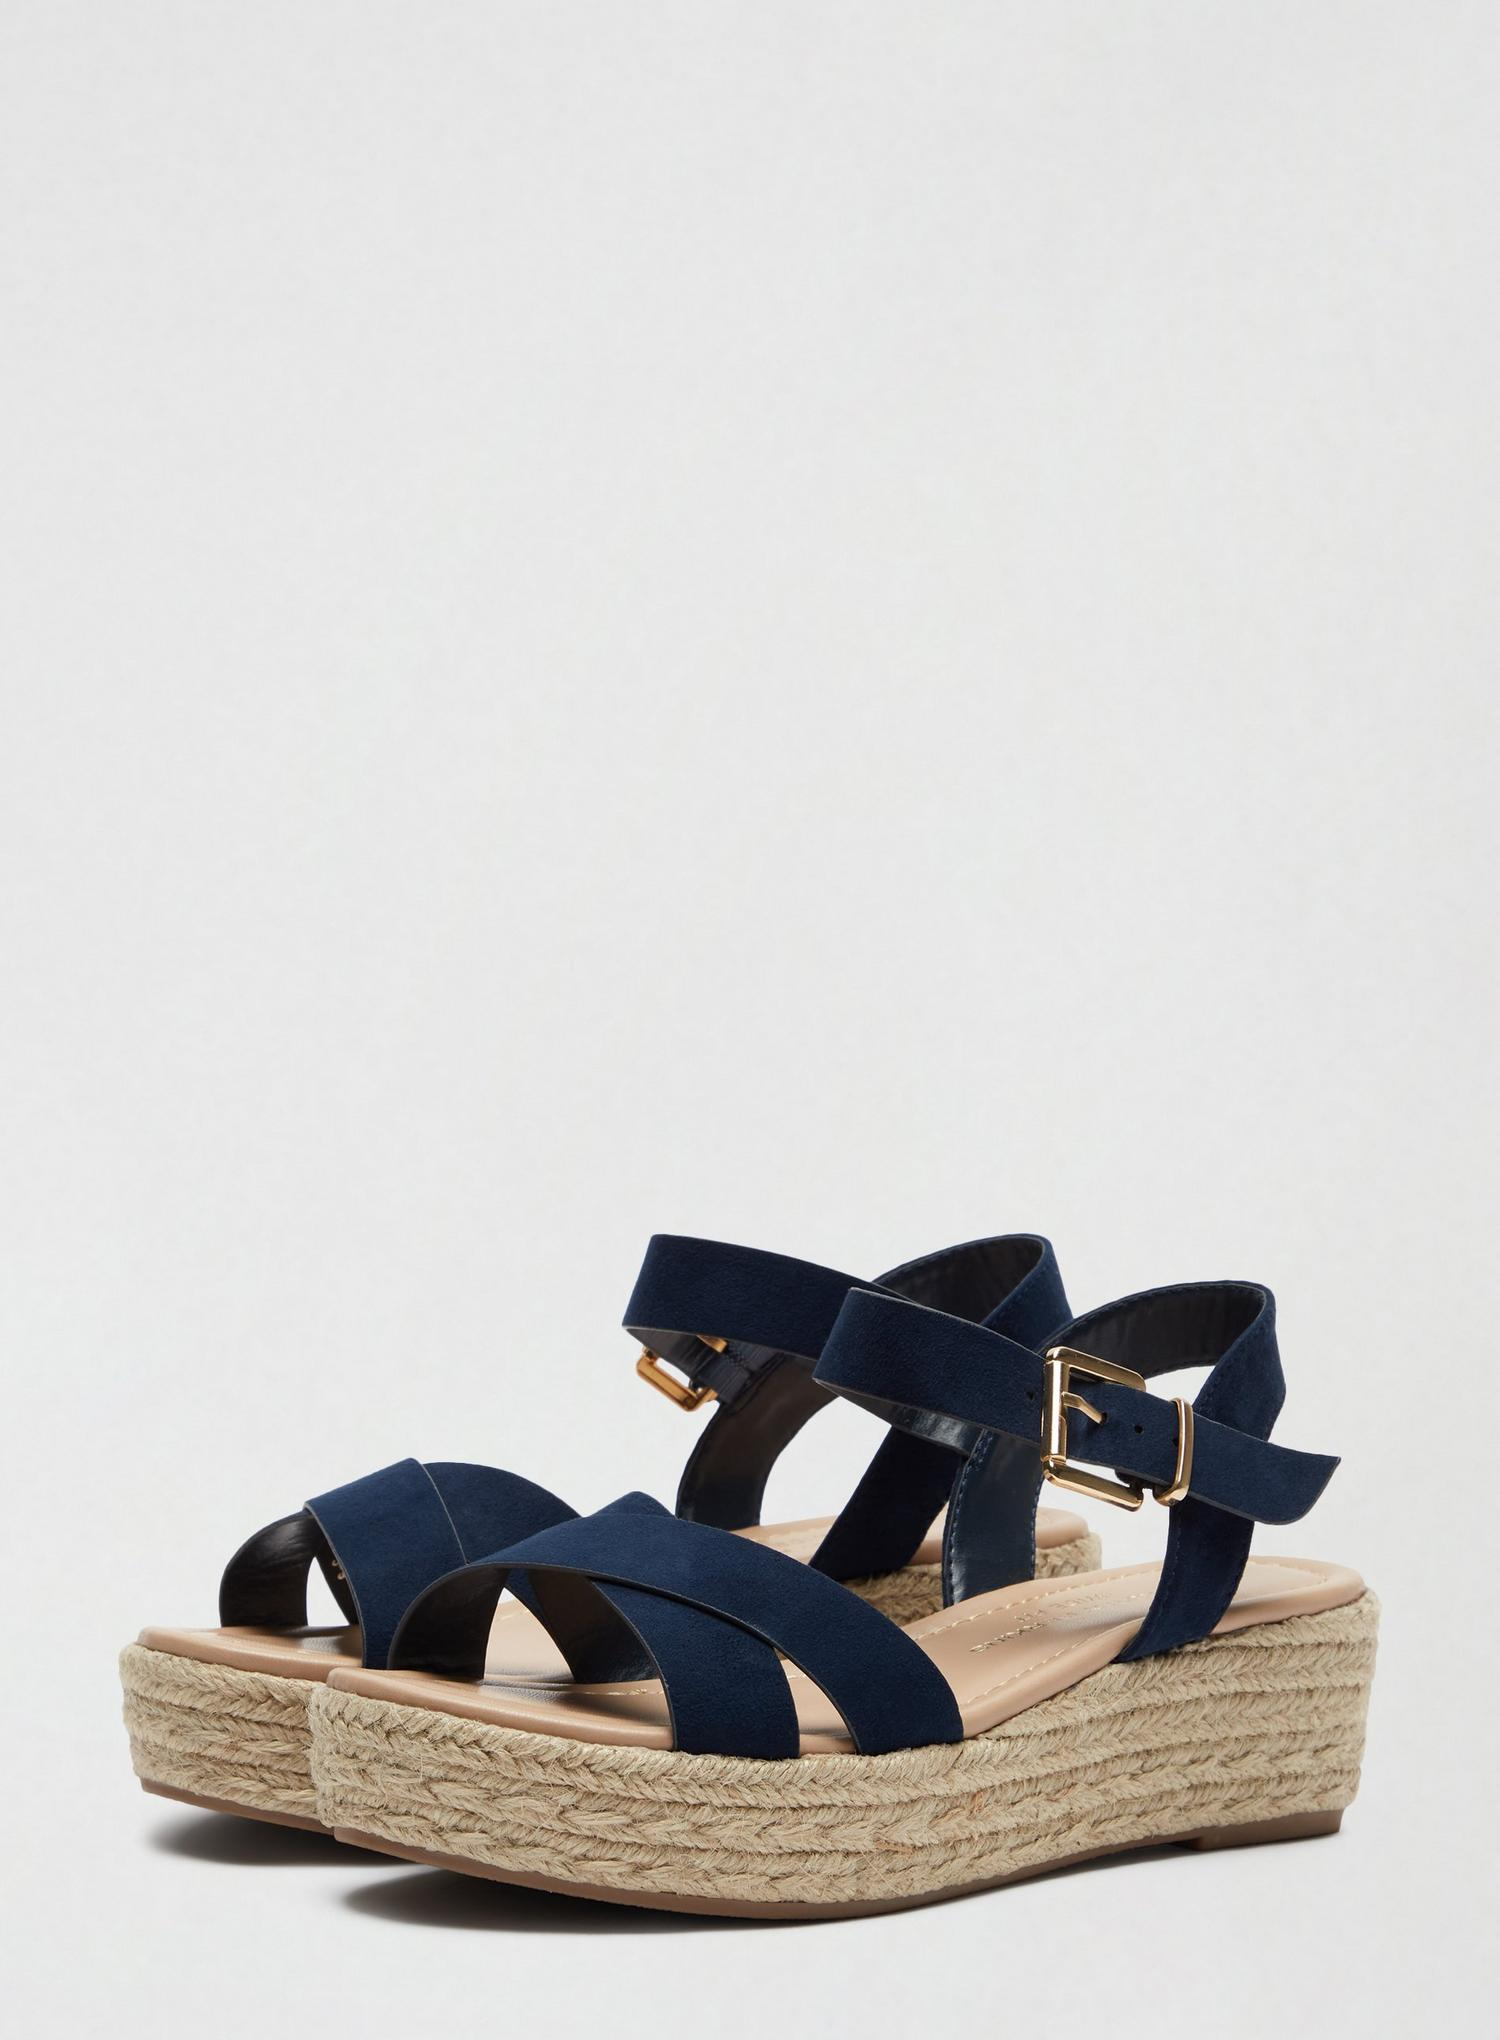 148 Wide Fit Navy Reenie Wedge Sandals image number 1